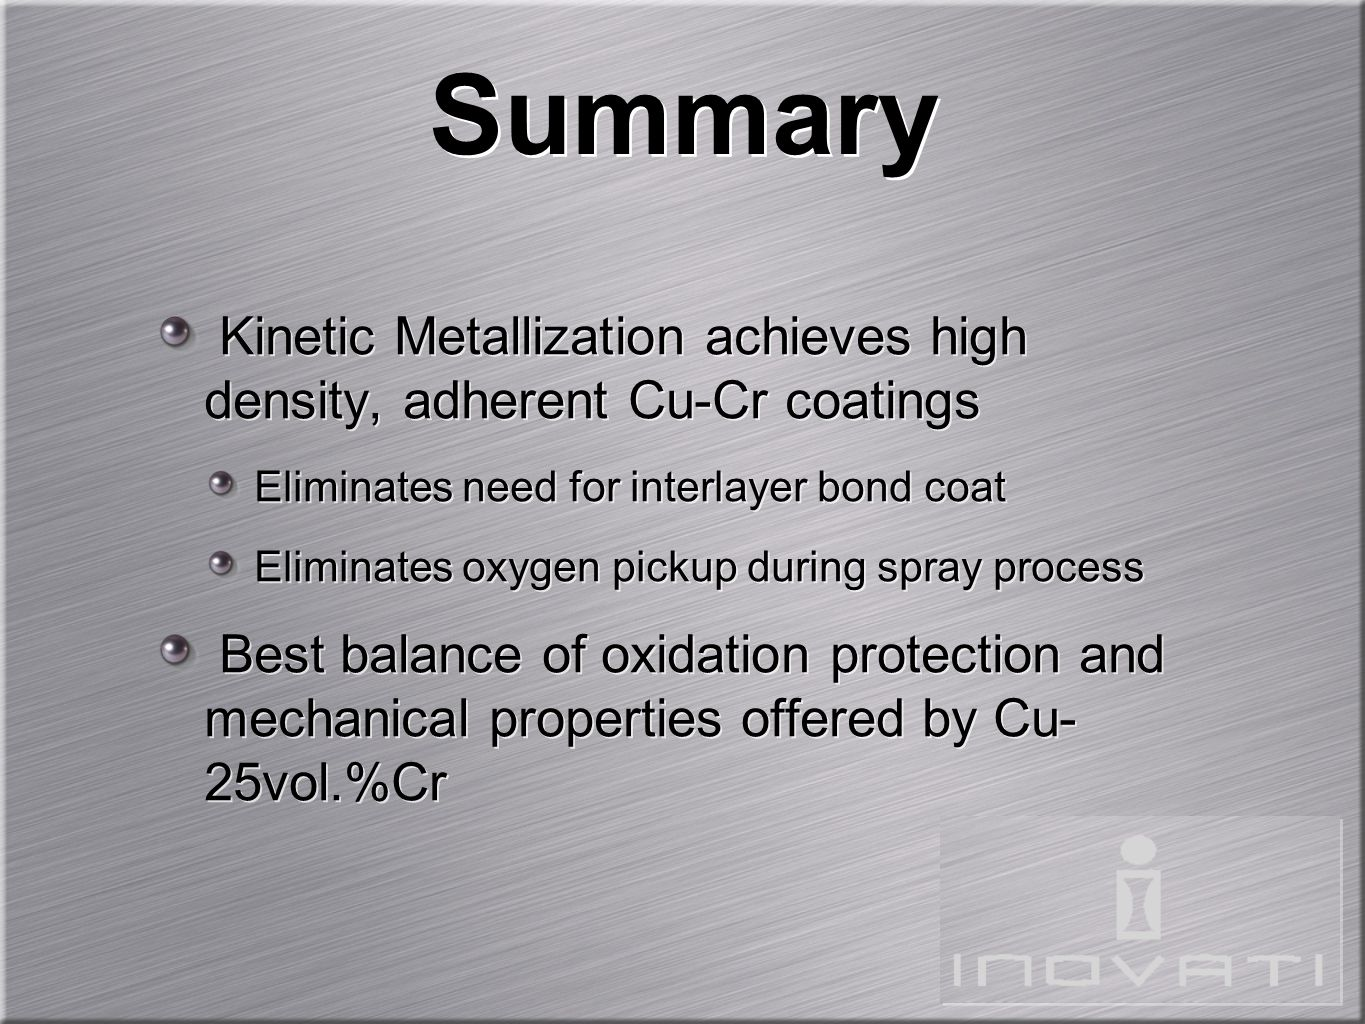 Summary Kinetic Metallization achieves high density, adherent Cu-Cr coatings Eliminates need for interlayer bond coat Eliminates oxygen pickup during spray process Best balance of oxidation protection and mechanical properties offered by Cu- 25vol.%Cr Kinetic Metallization achieves high density, adherent Cu-Cr coatings Eliminates need for interlayer bond coat Eliminates oxygen pickup during spray process Best balance of oxidation protection and mechanical properties offered by Cu- 25vol.%Cr